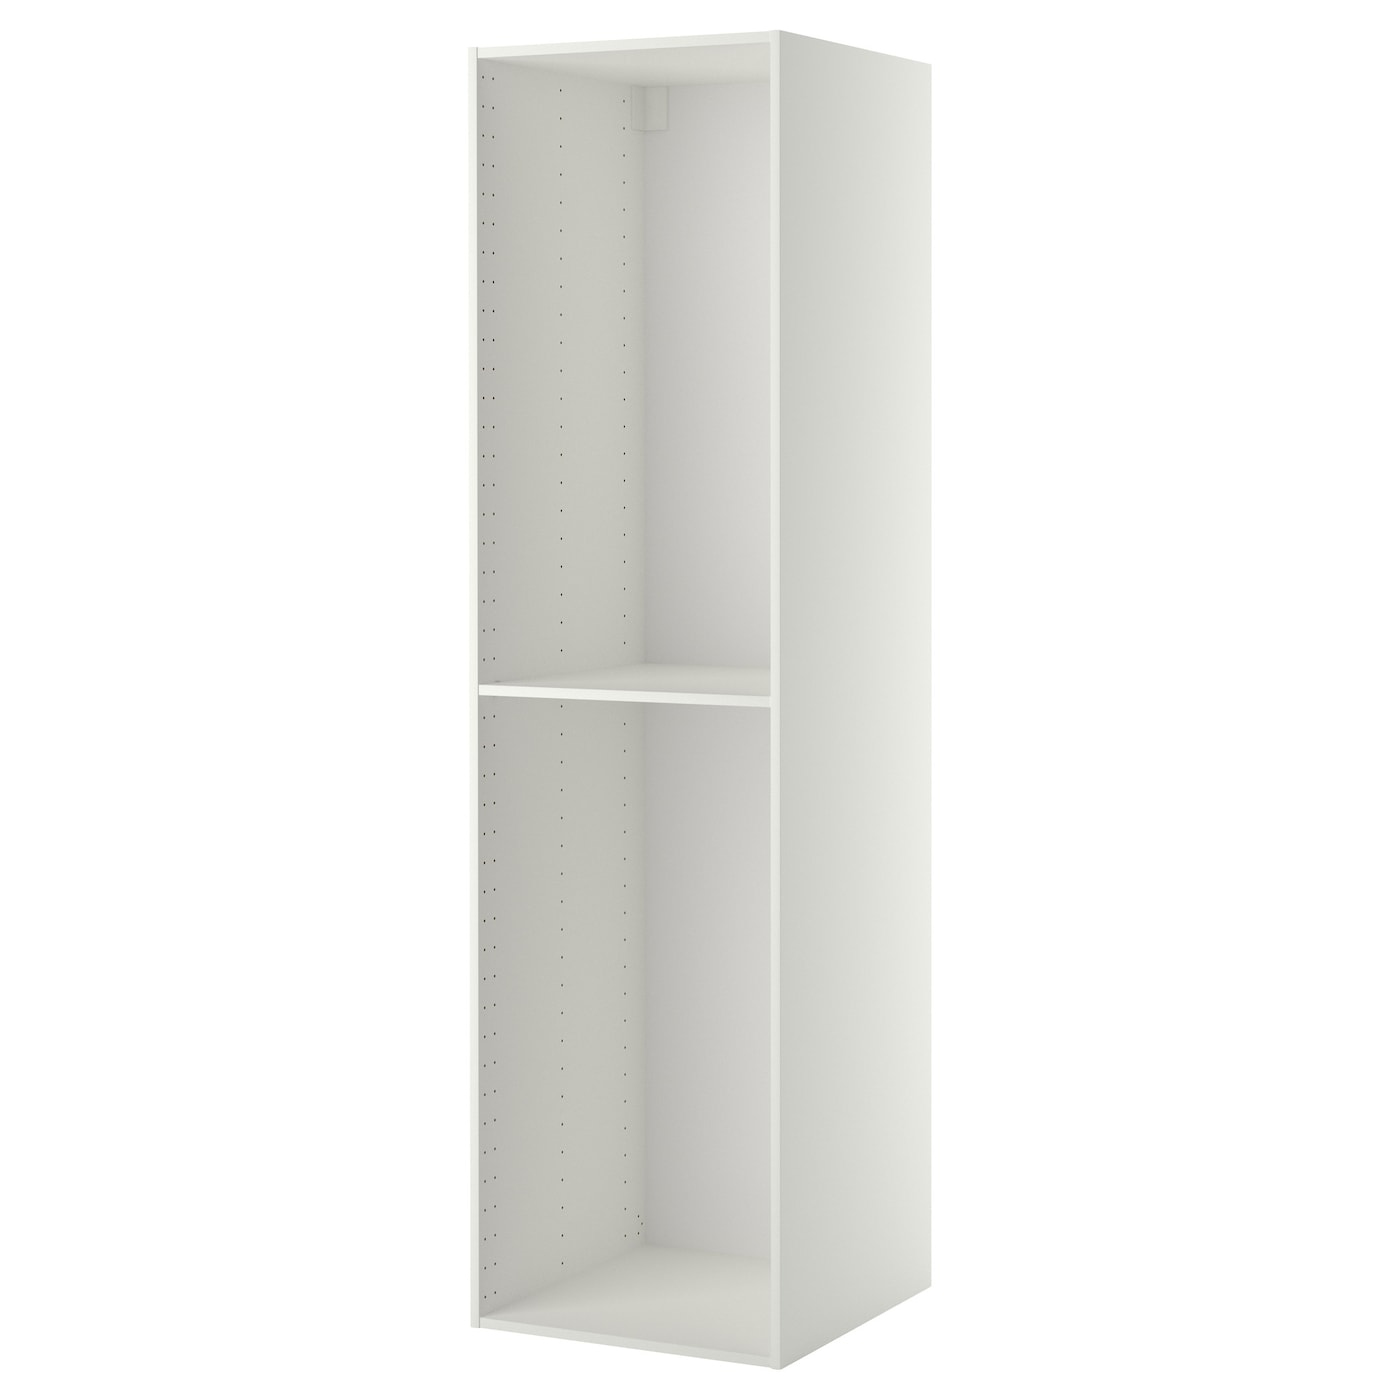 IKEA METOD high cabinet frame 1 reinforced shelf included; increases stability.